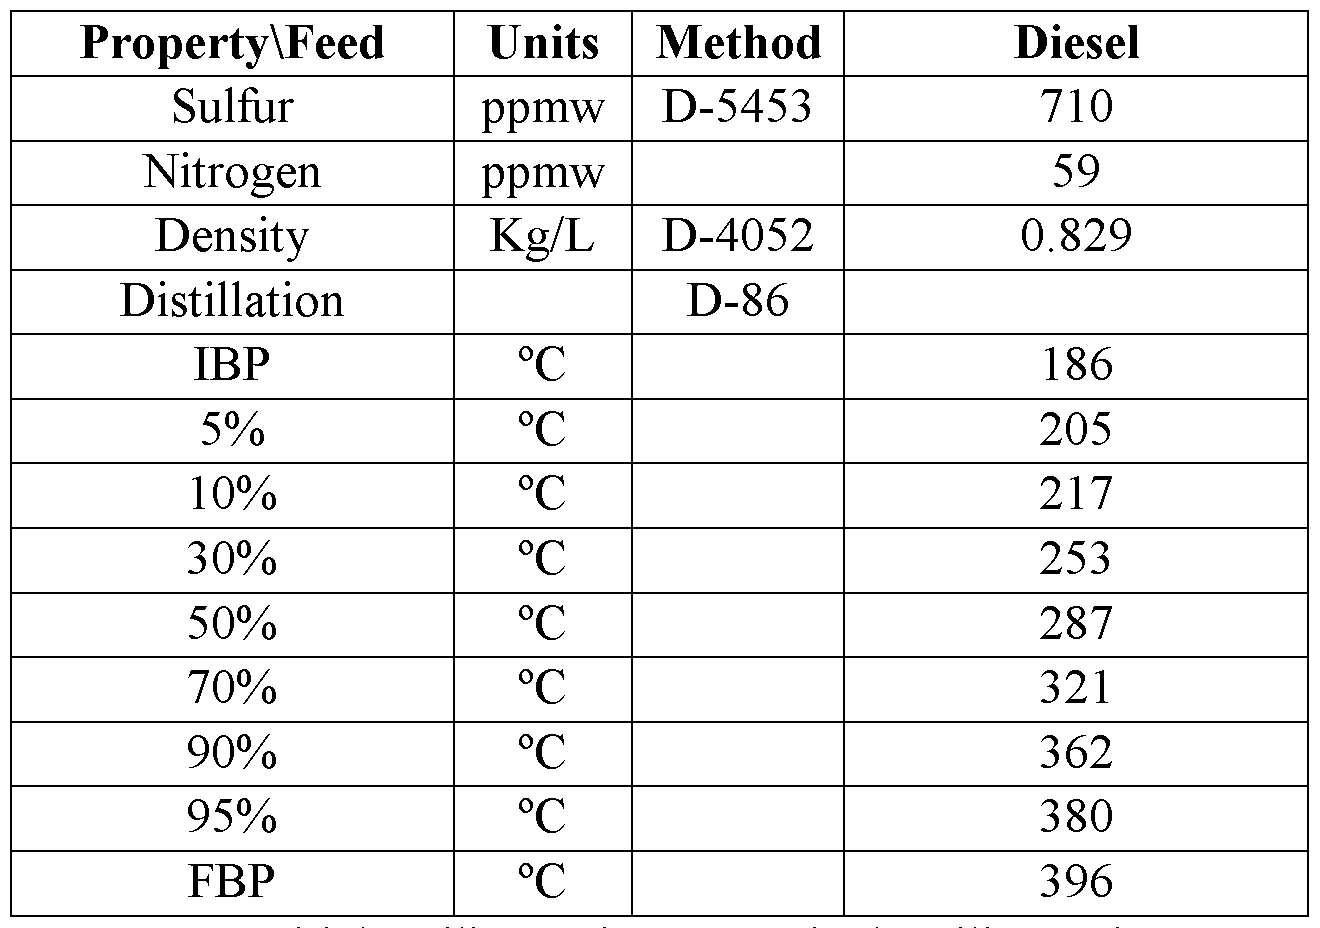 Gallon conversion chart liter images gallon conversion chart liter liquid conversion chart gallon nvjuhfo Image collections